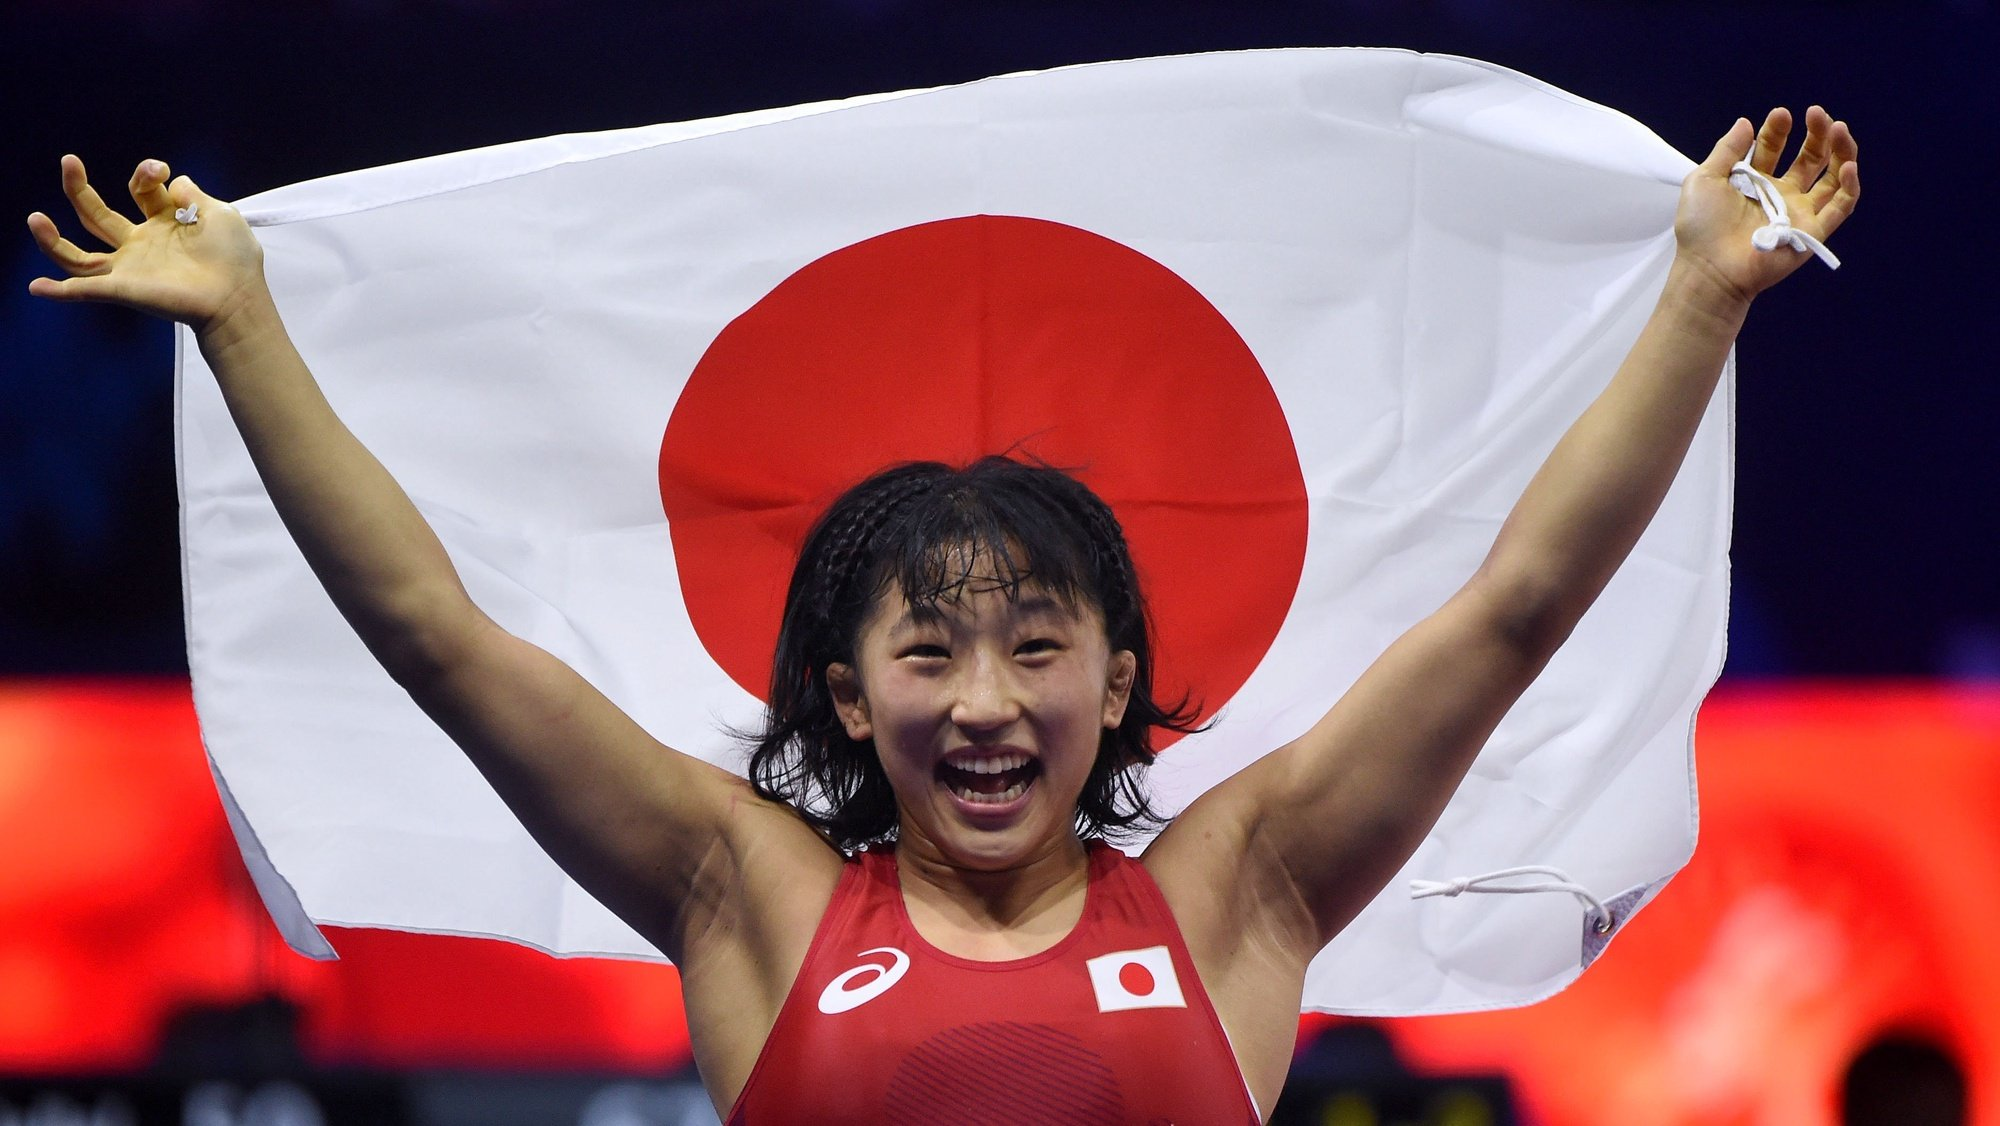 epa07119361 Yui Susaki of Japan reacts after she won against Mariya Stadnik of Azerbaijan in the final of the women's 50kg category of the Wrestling World Championships in Budapest, Hungary, 25 October 2018.  EPA/BALAZS CZAGANY HUNGARY OUT